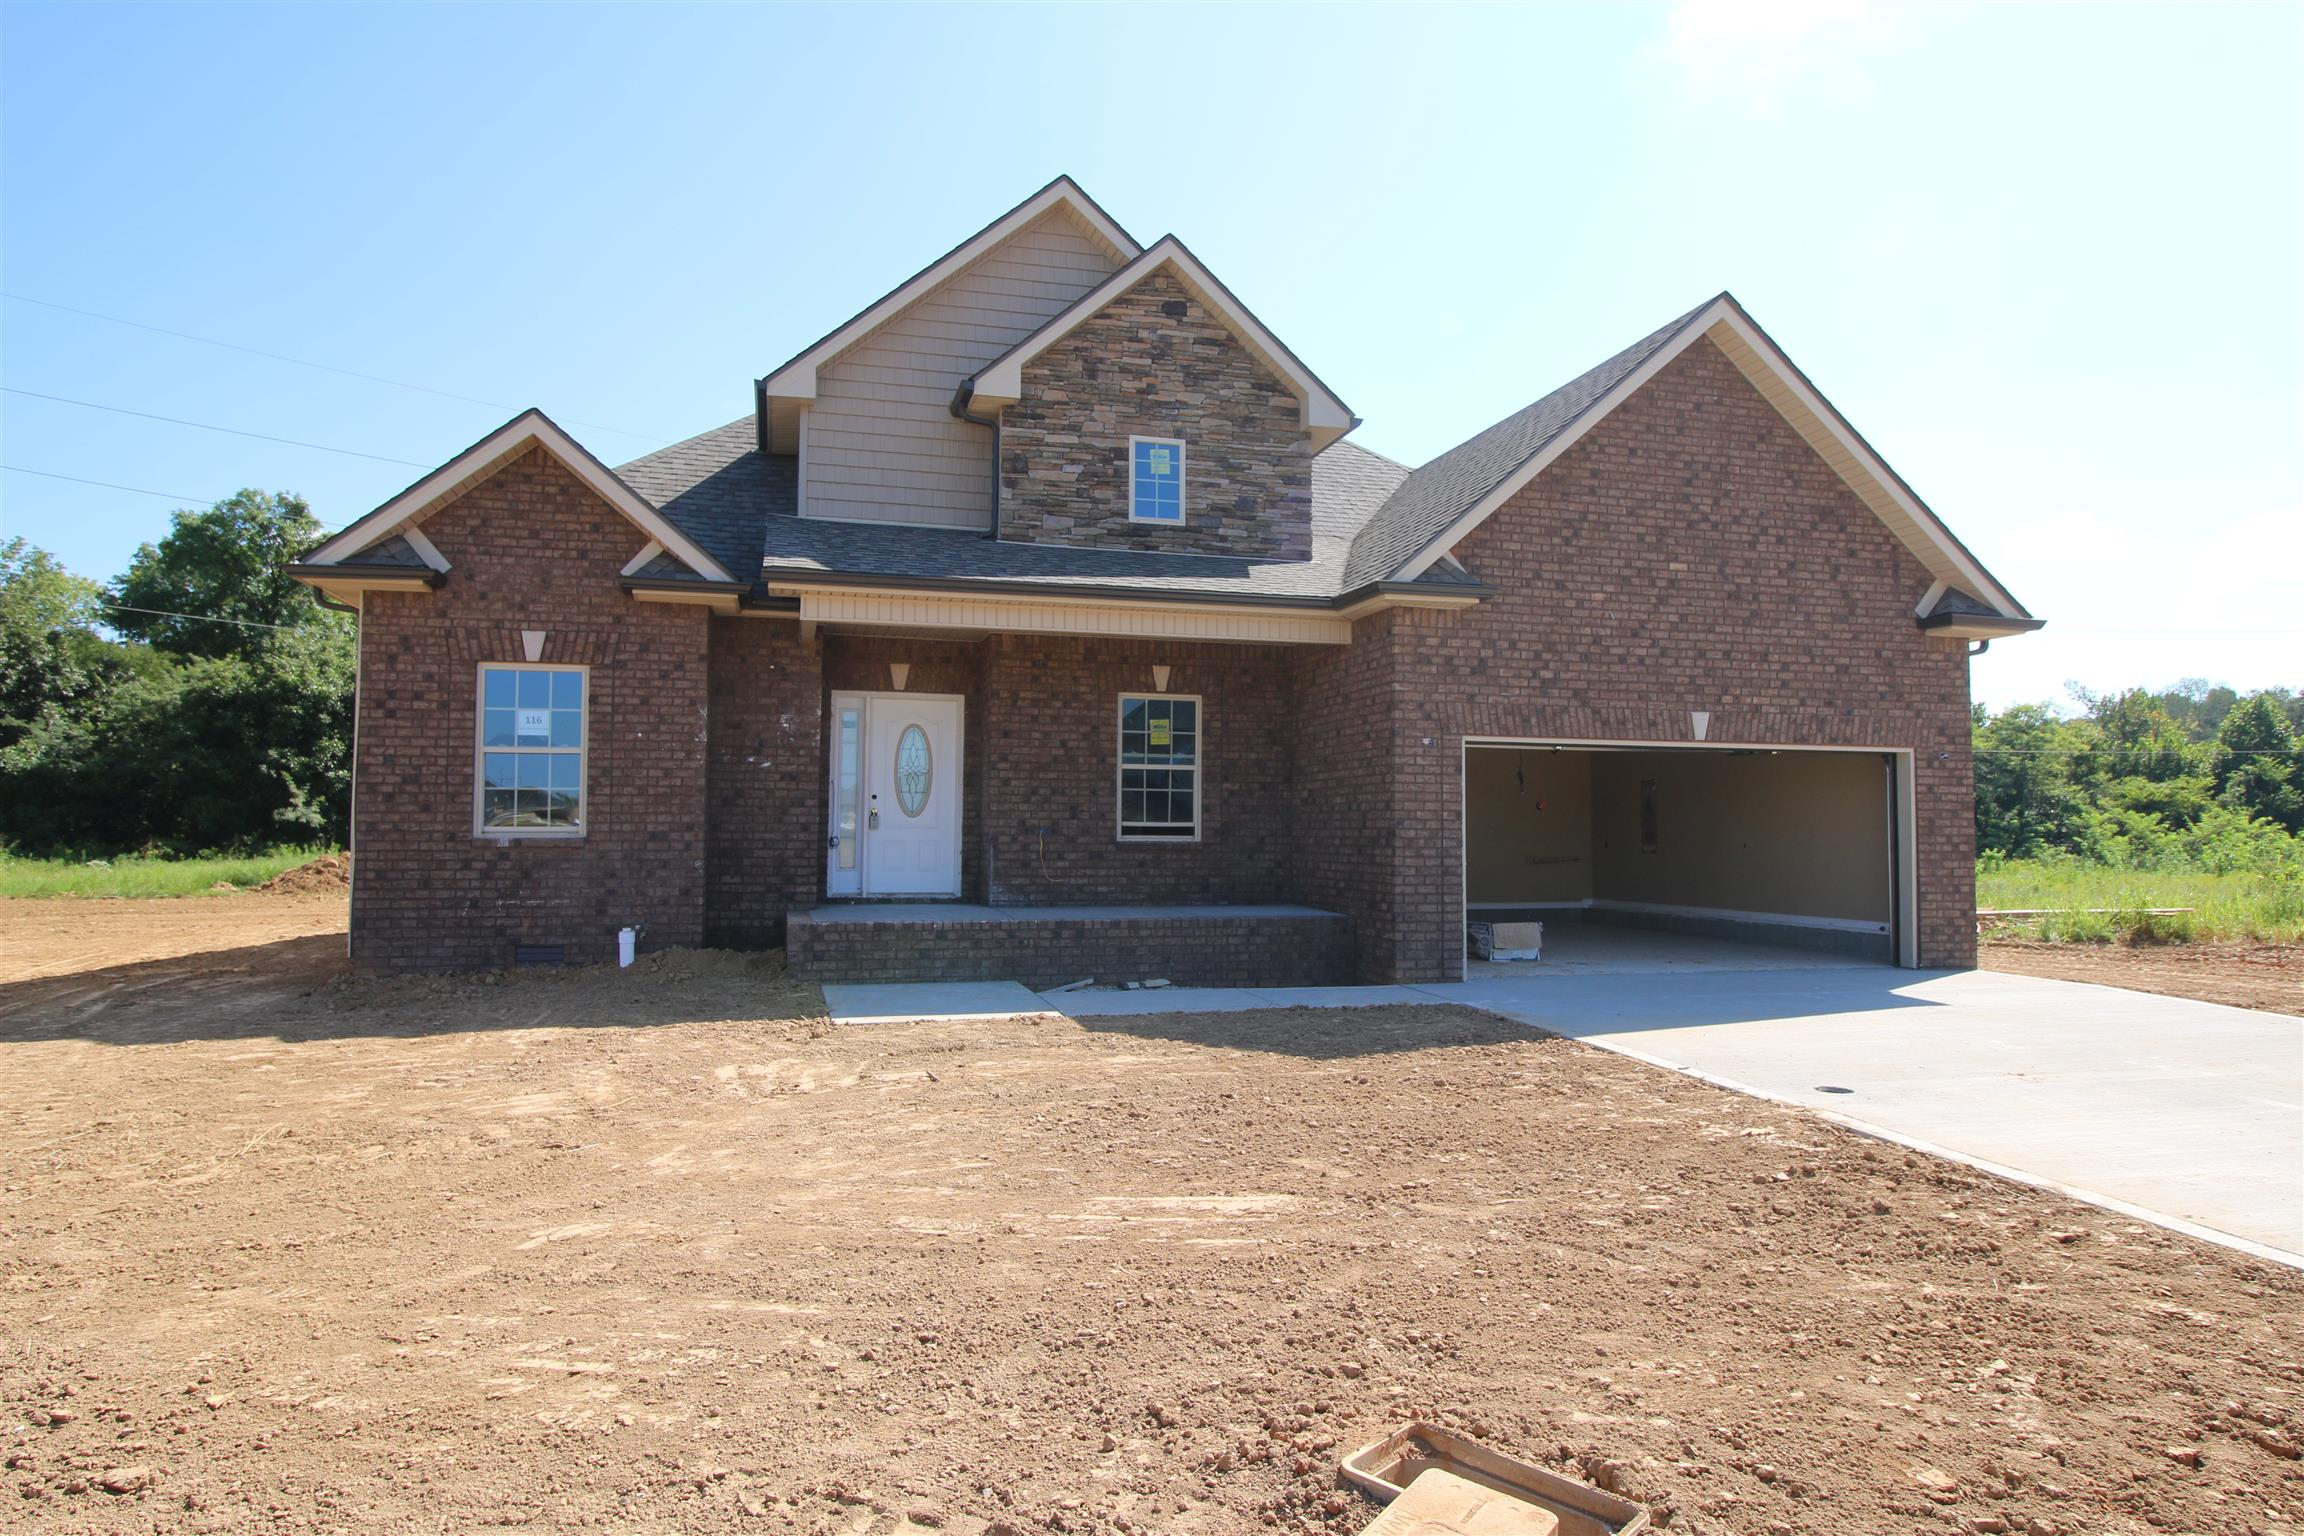 116 The Groves at Hearthstone, Clarksville, TN 37040 - Clarksville, TN real estate listing